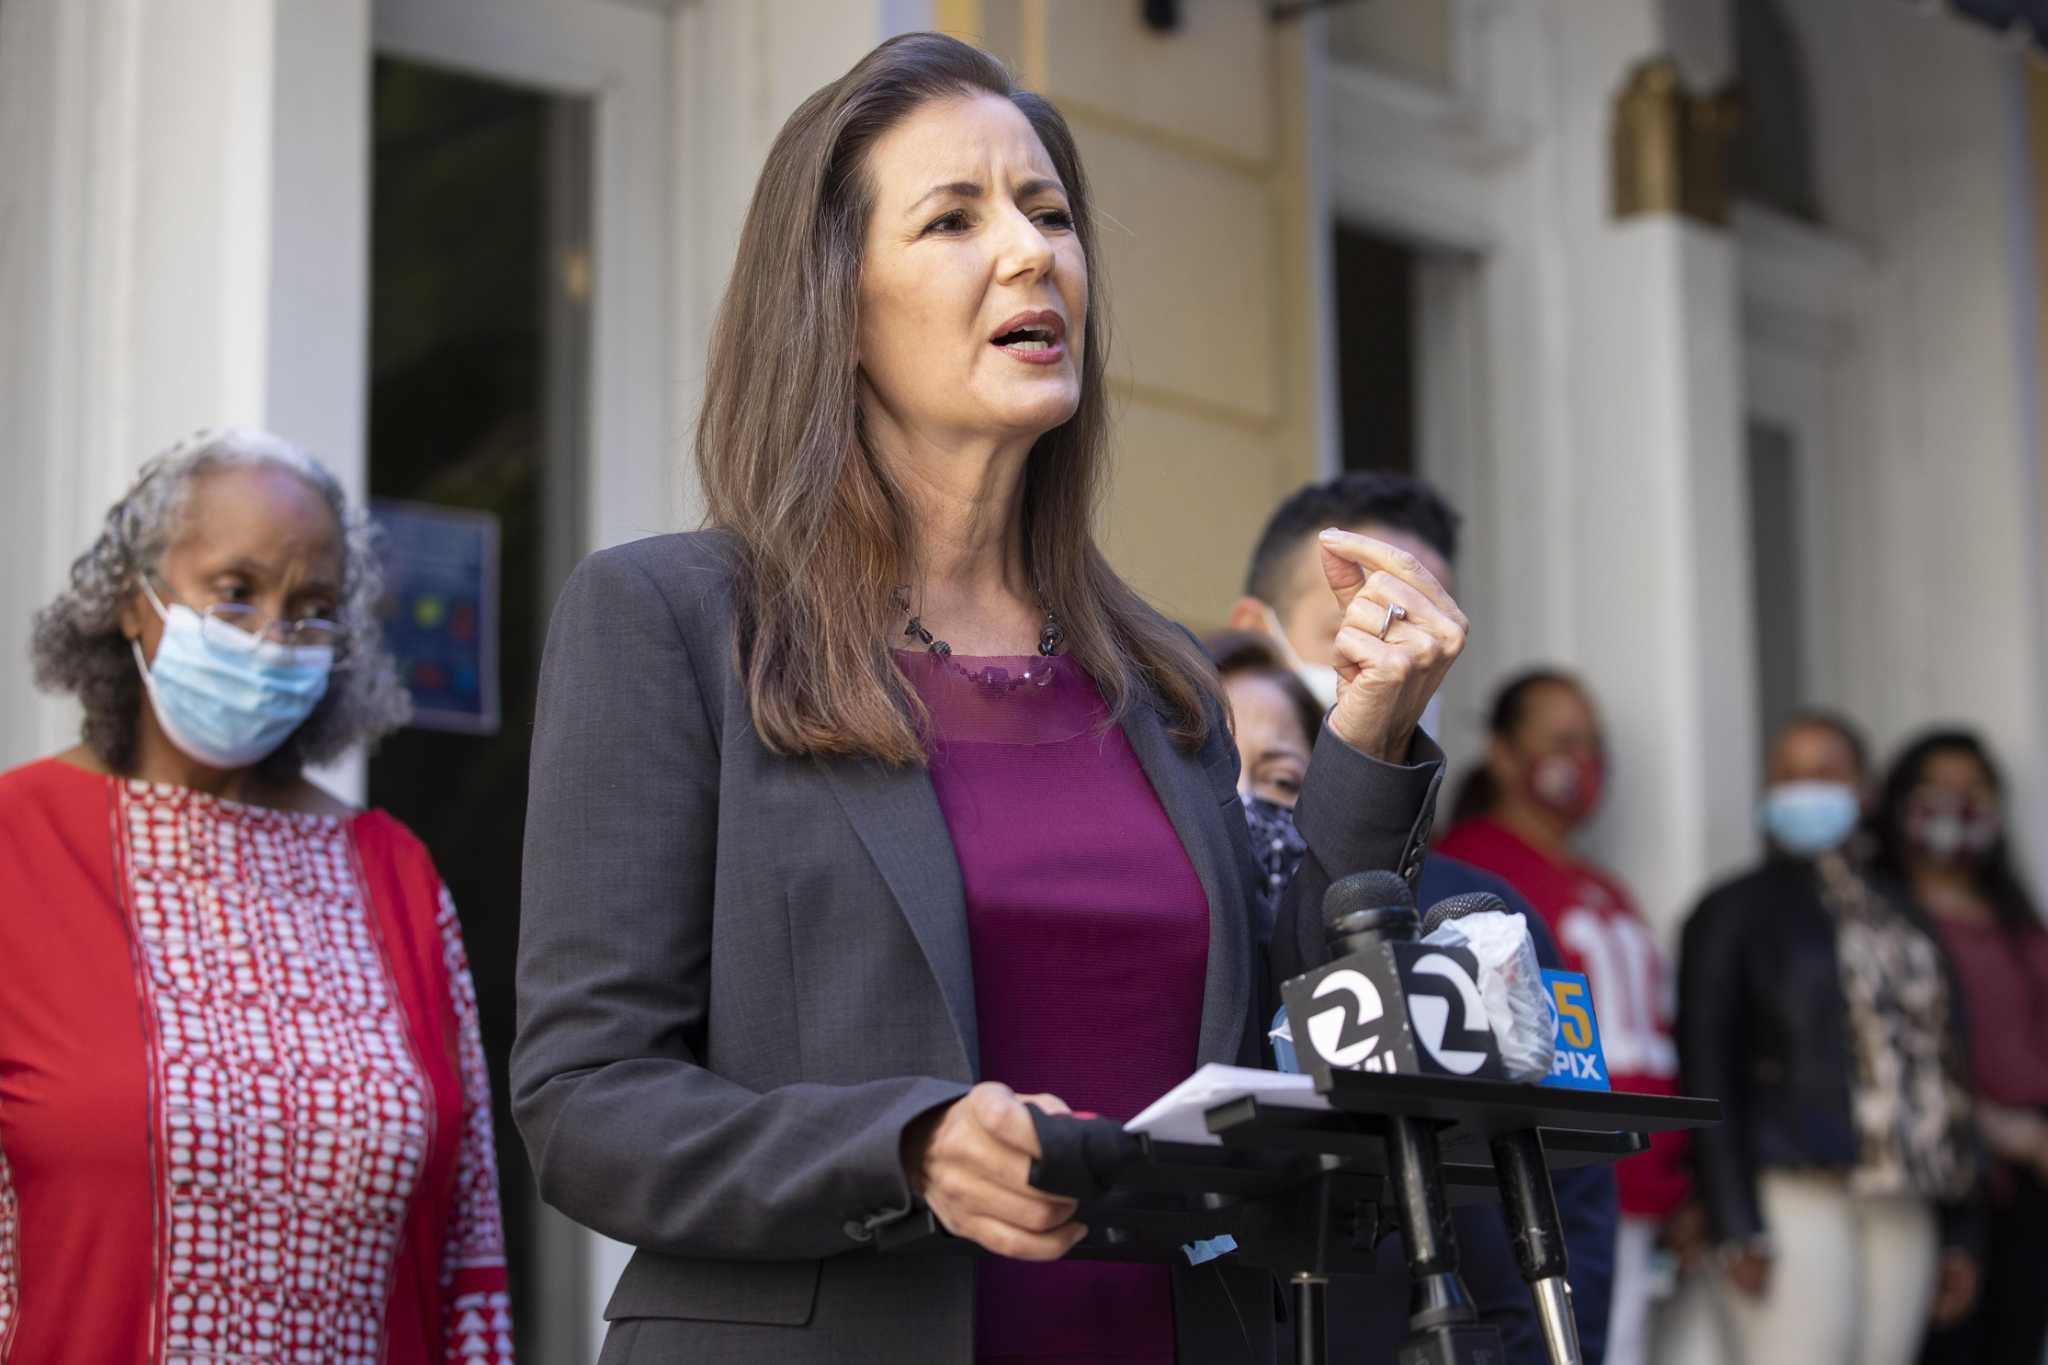 Oakland cuts police funding to pay for social services, violence prevention amid spike in homicides